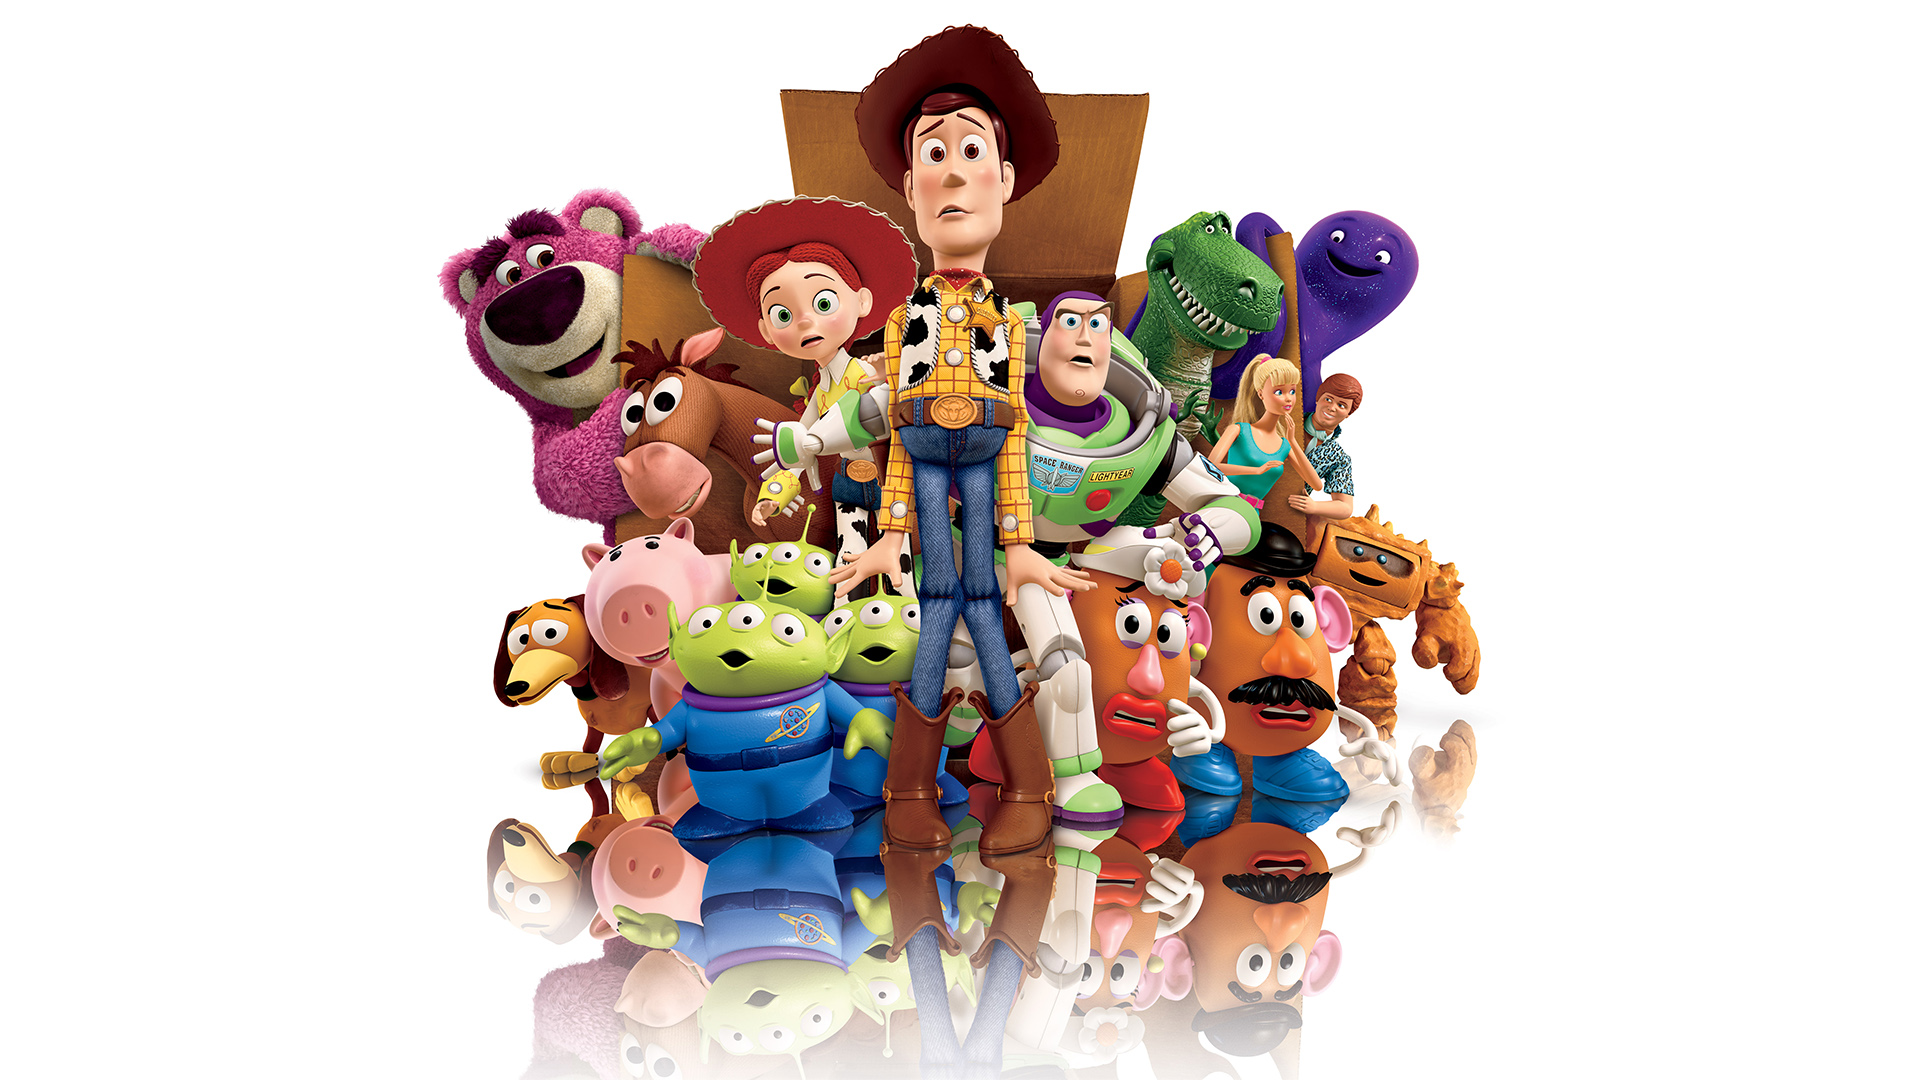 Infinity And Beyond Wallpaper Woody And Buzz